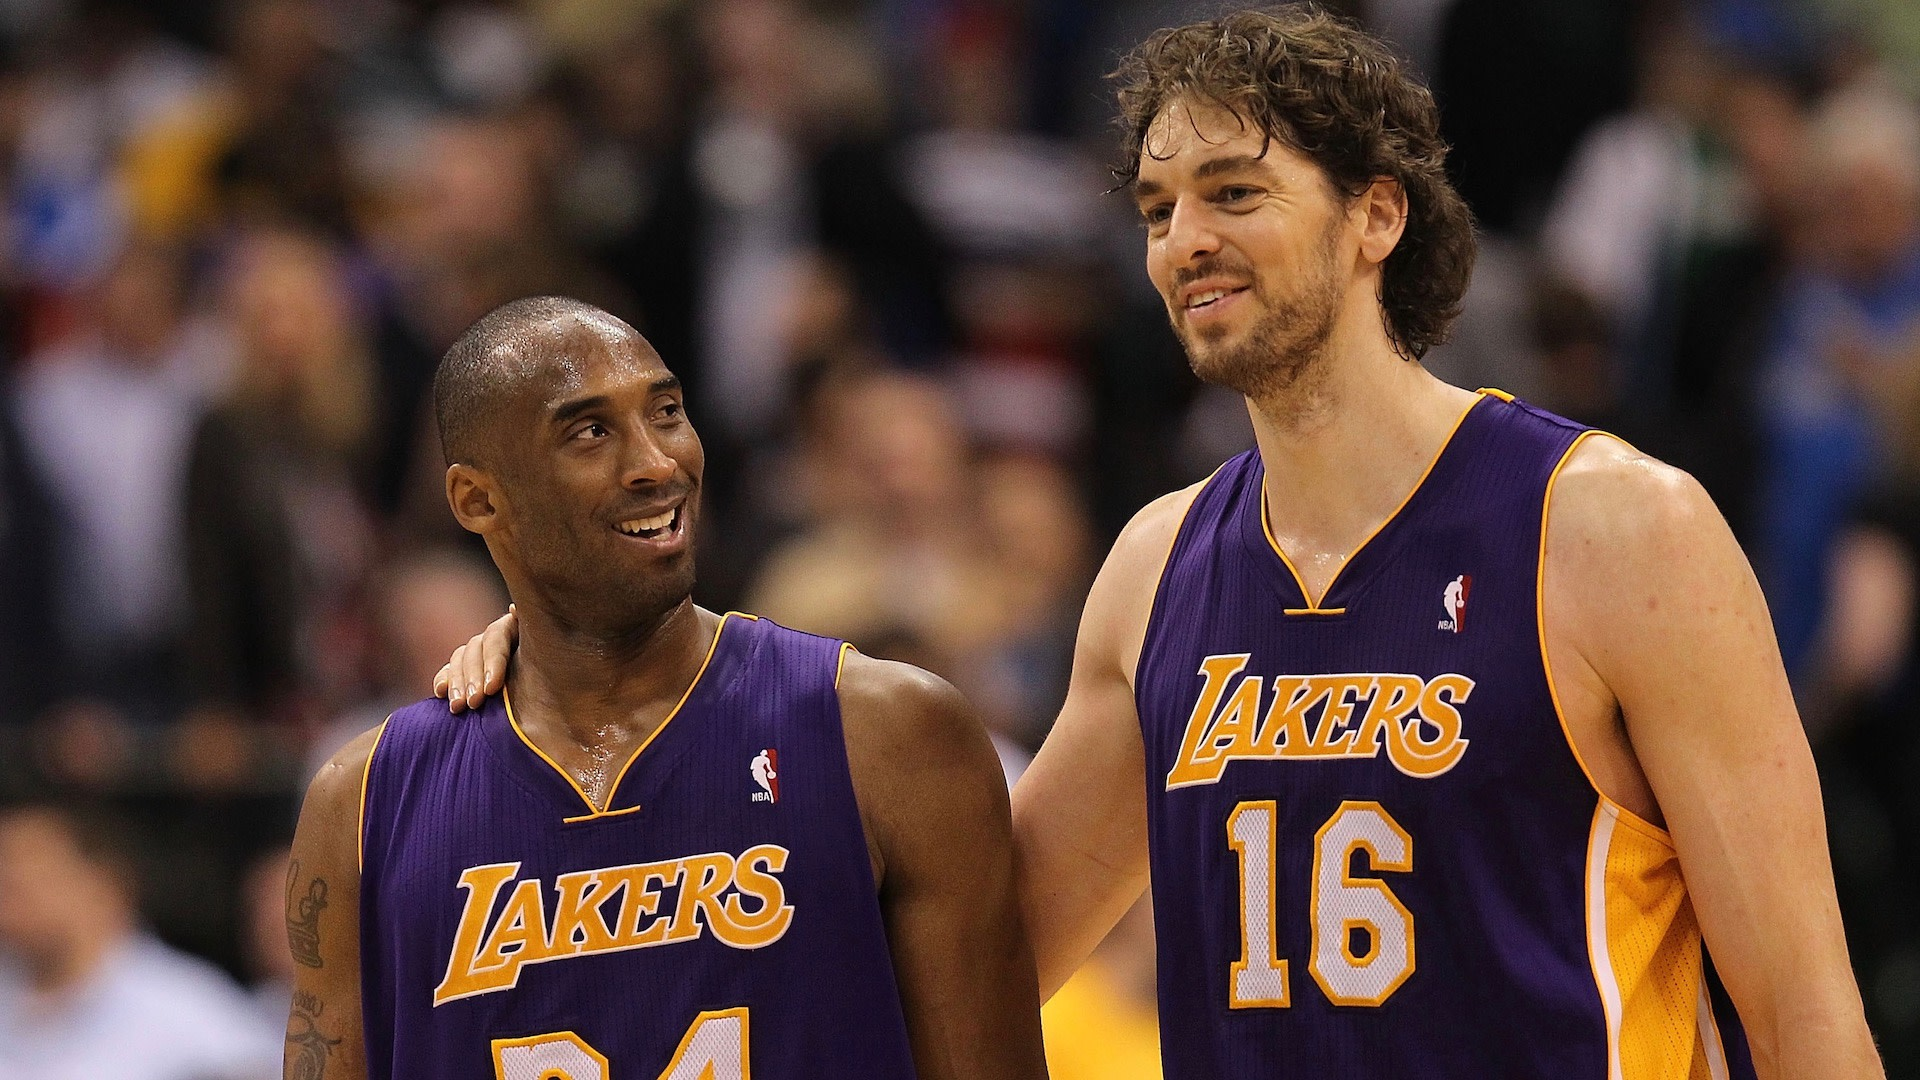 pau-gasol-names-newborn-after-kobe-bryants-daughter-gianna.jpg